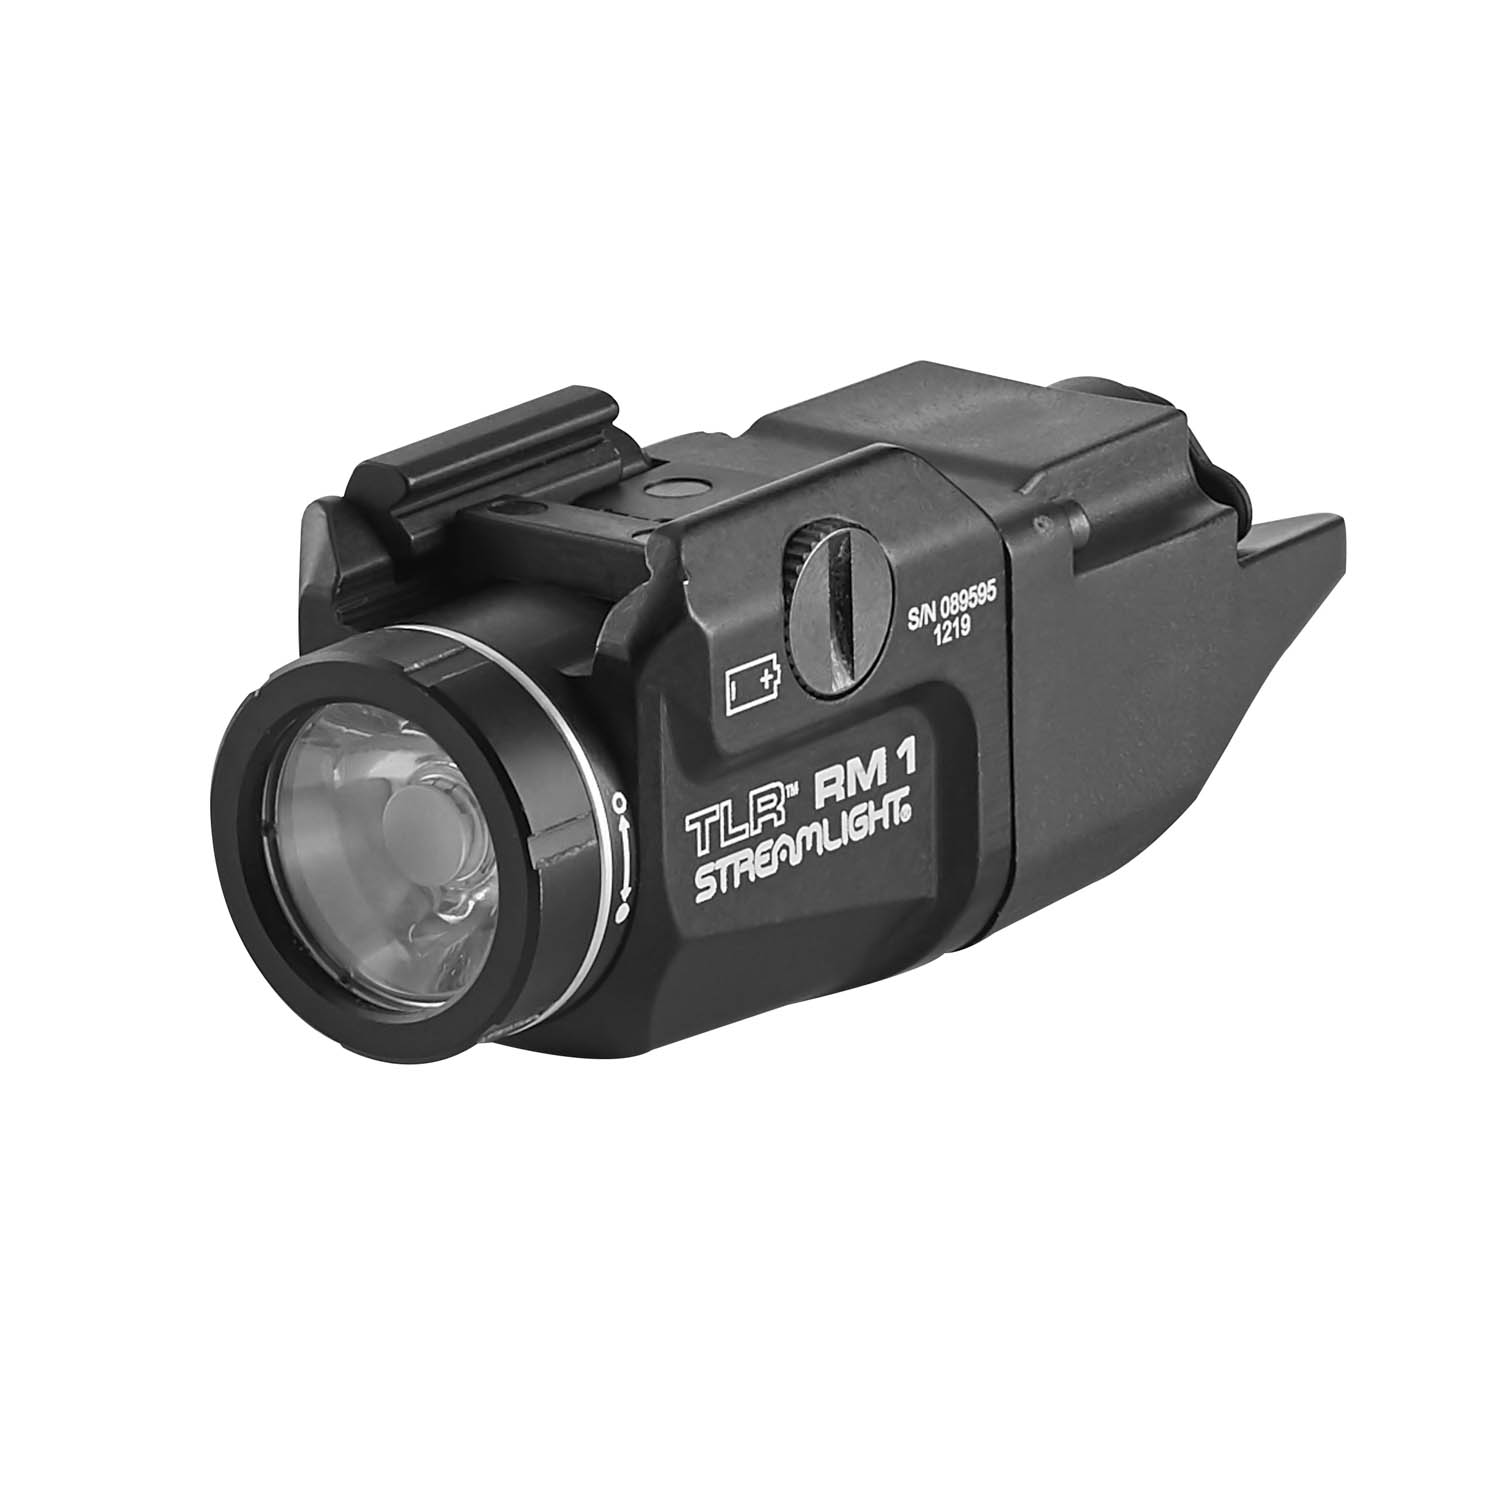 Streamlight TLR RM 1 Compact Mounted Tactical Light